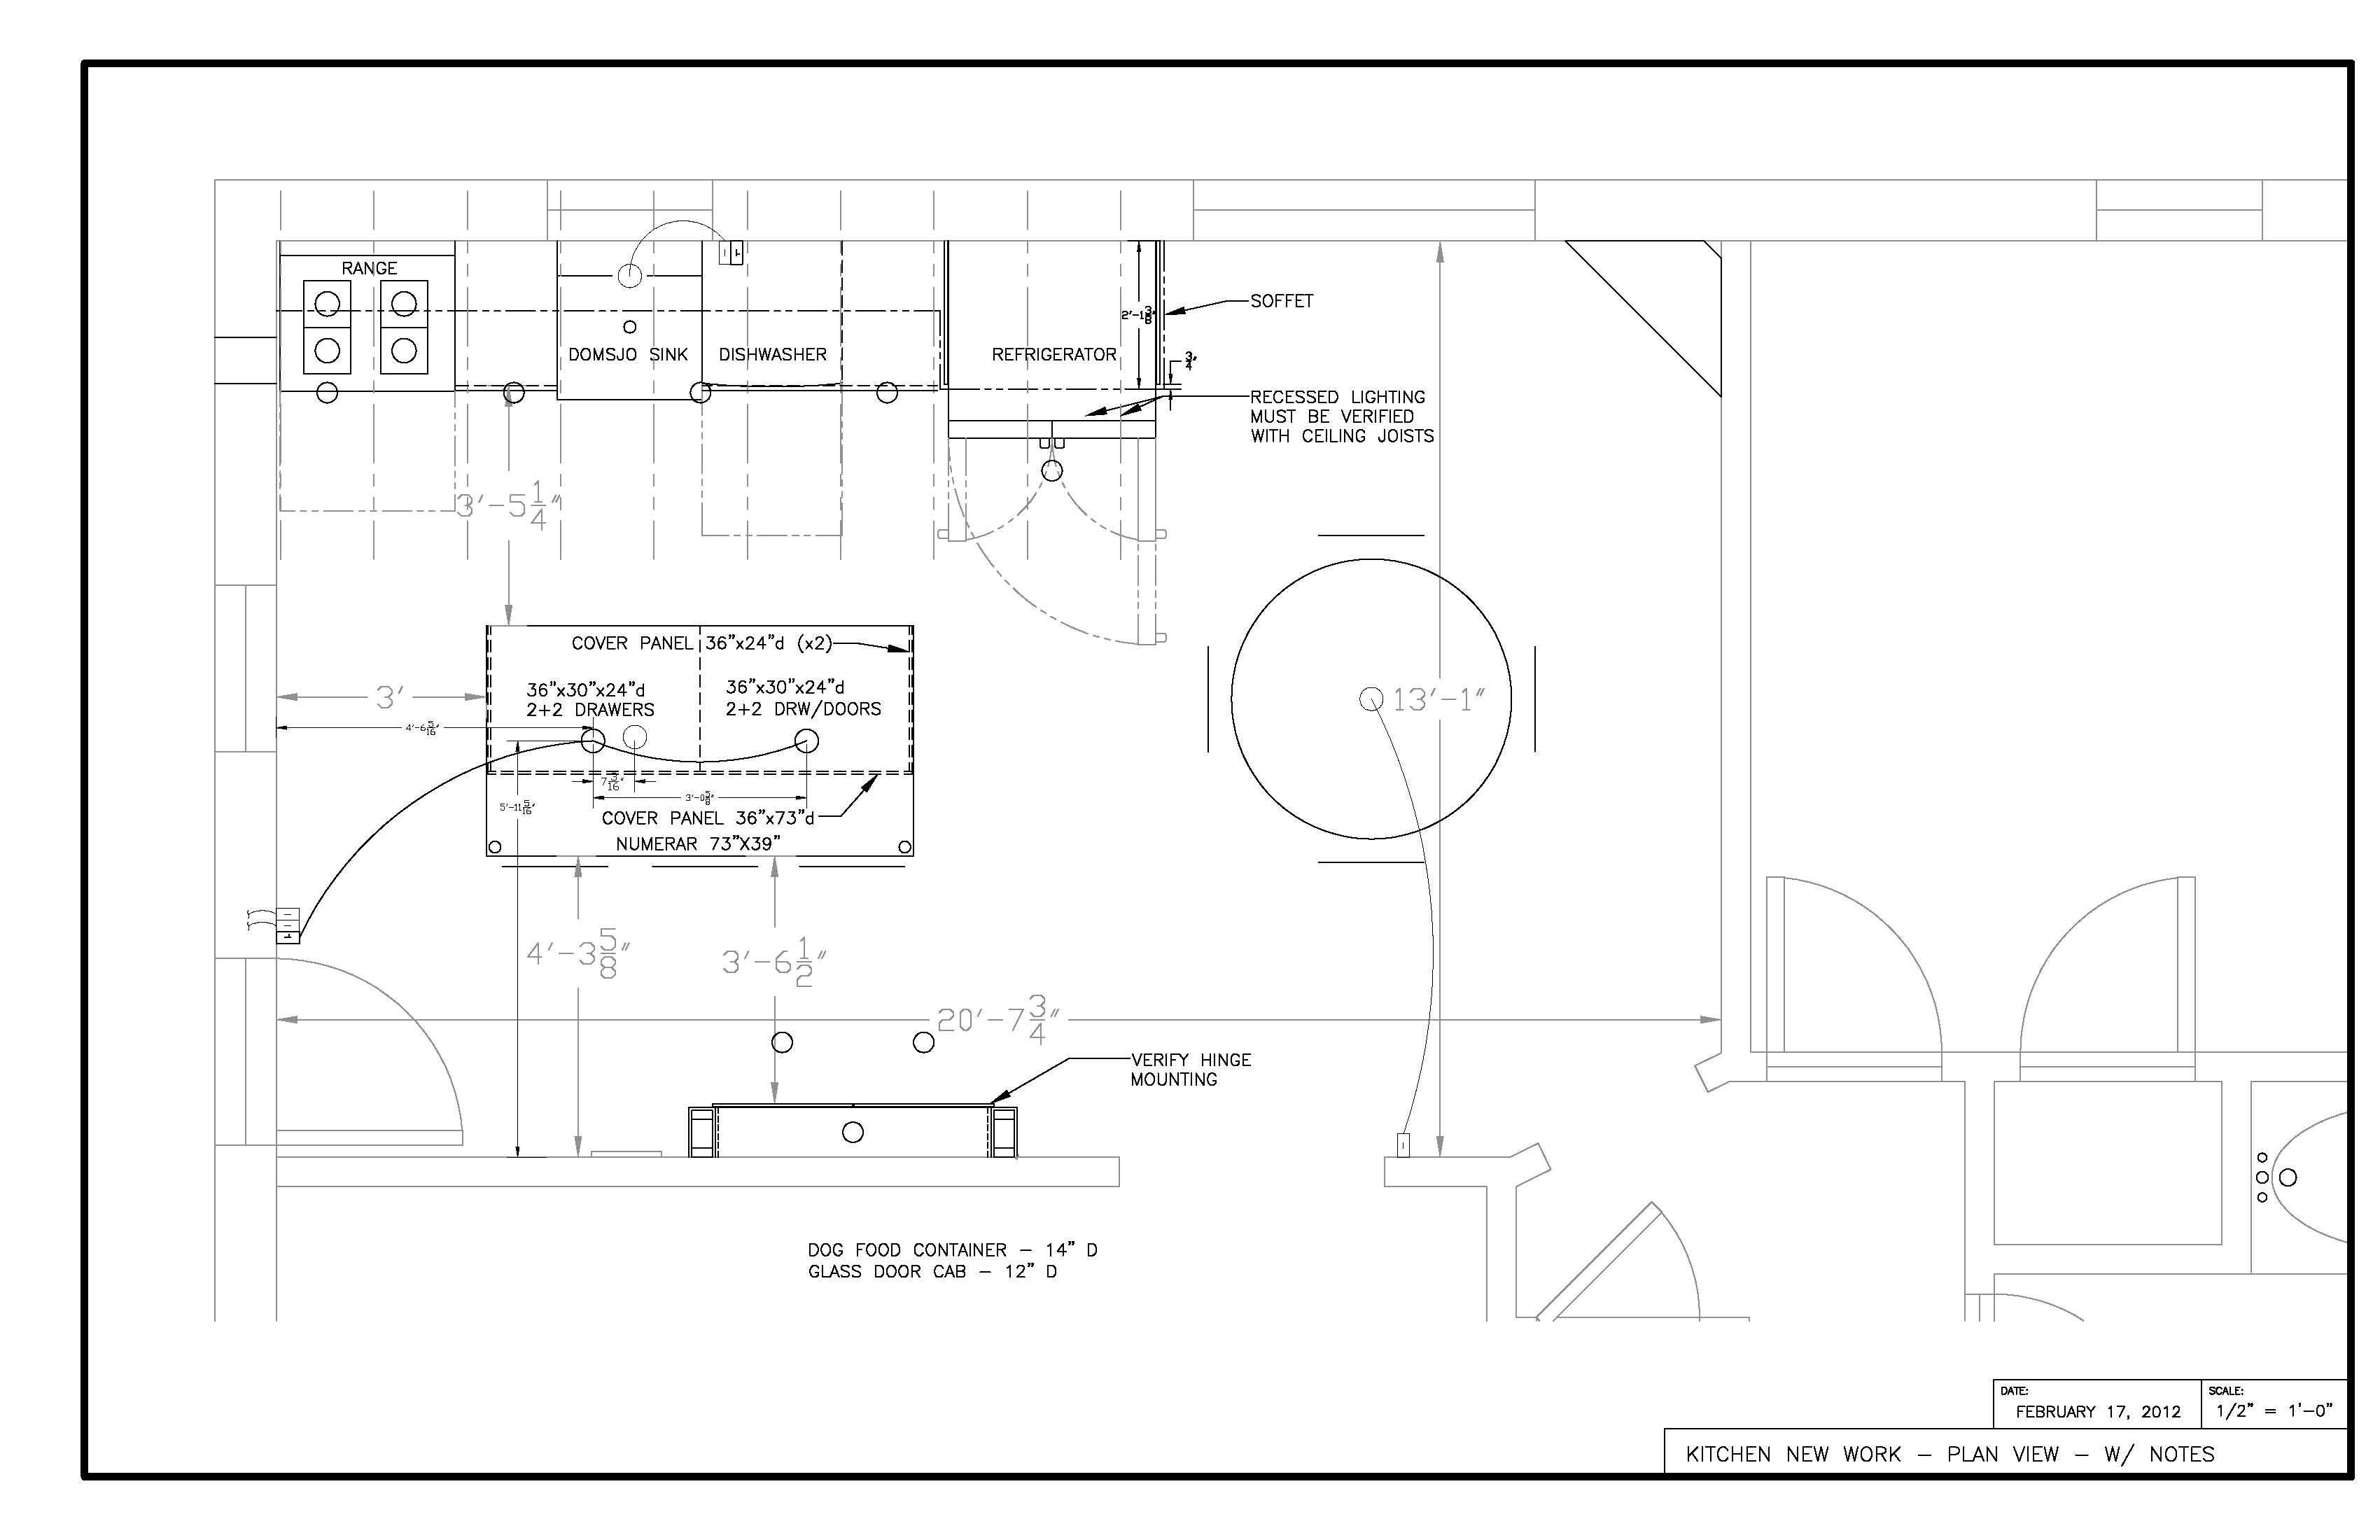 kitchen plan view current working drawing w electrical [ 3400 x 2200 Pixel ]